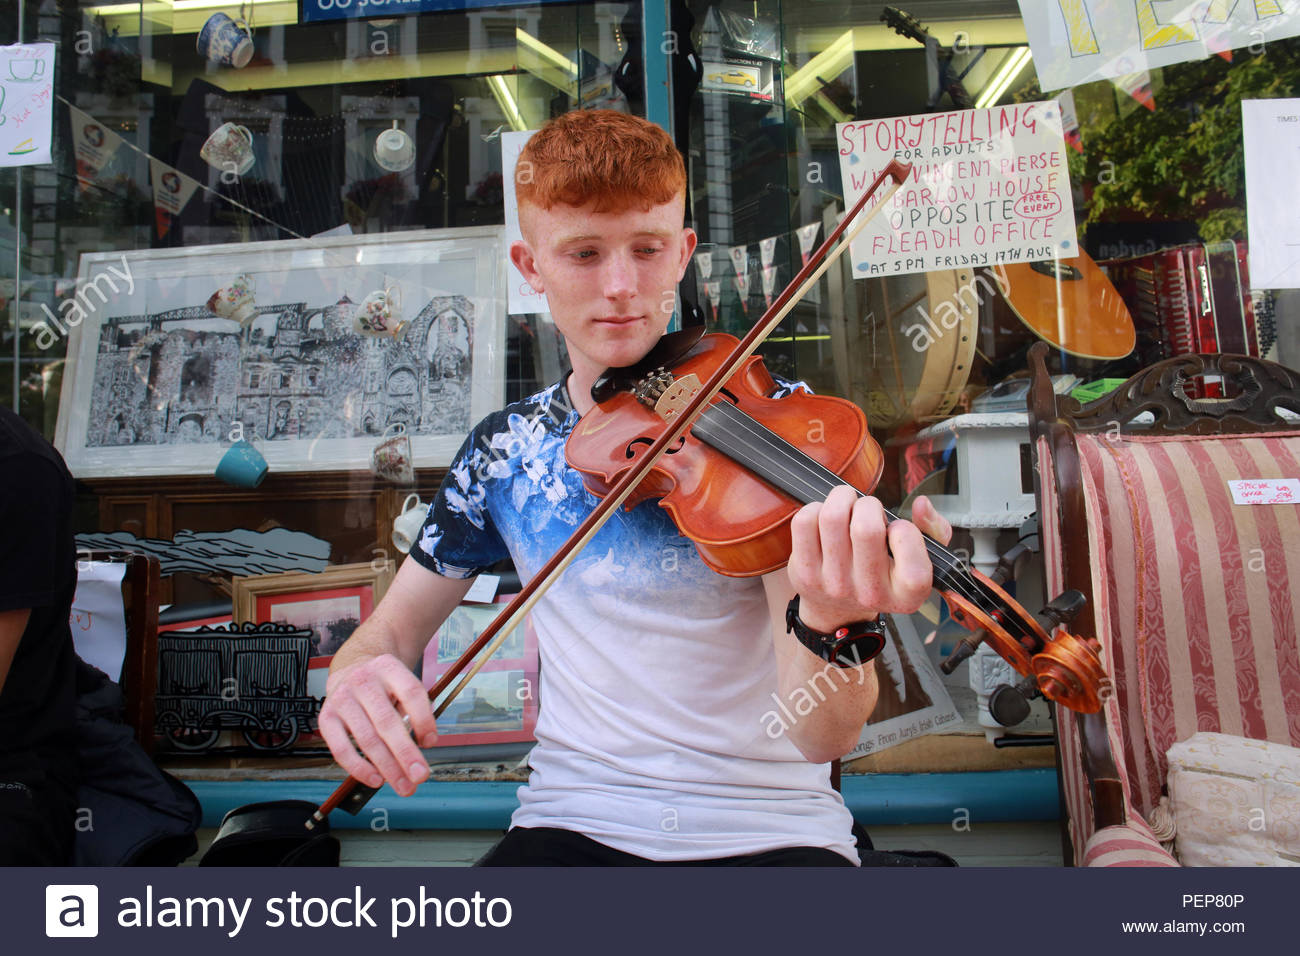 Drogheda, Ireland. 16th Aug 2018. A local young musician plays a tune as the Fleadh Cheoil continues in Drogheda Ireland. Huge crowds of . visitors are expected to attend the event over the coming weekend Credit: Clearpix/Alamy Live News - Stock Image